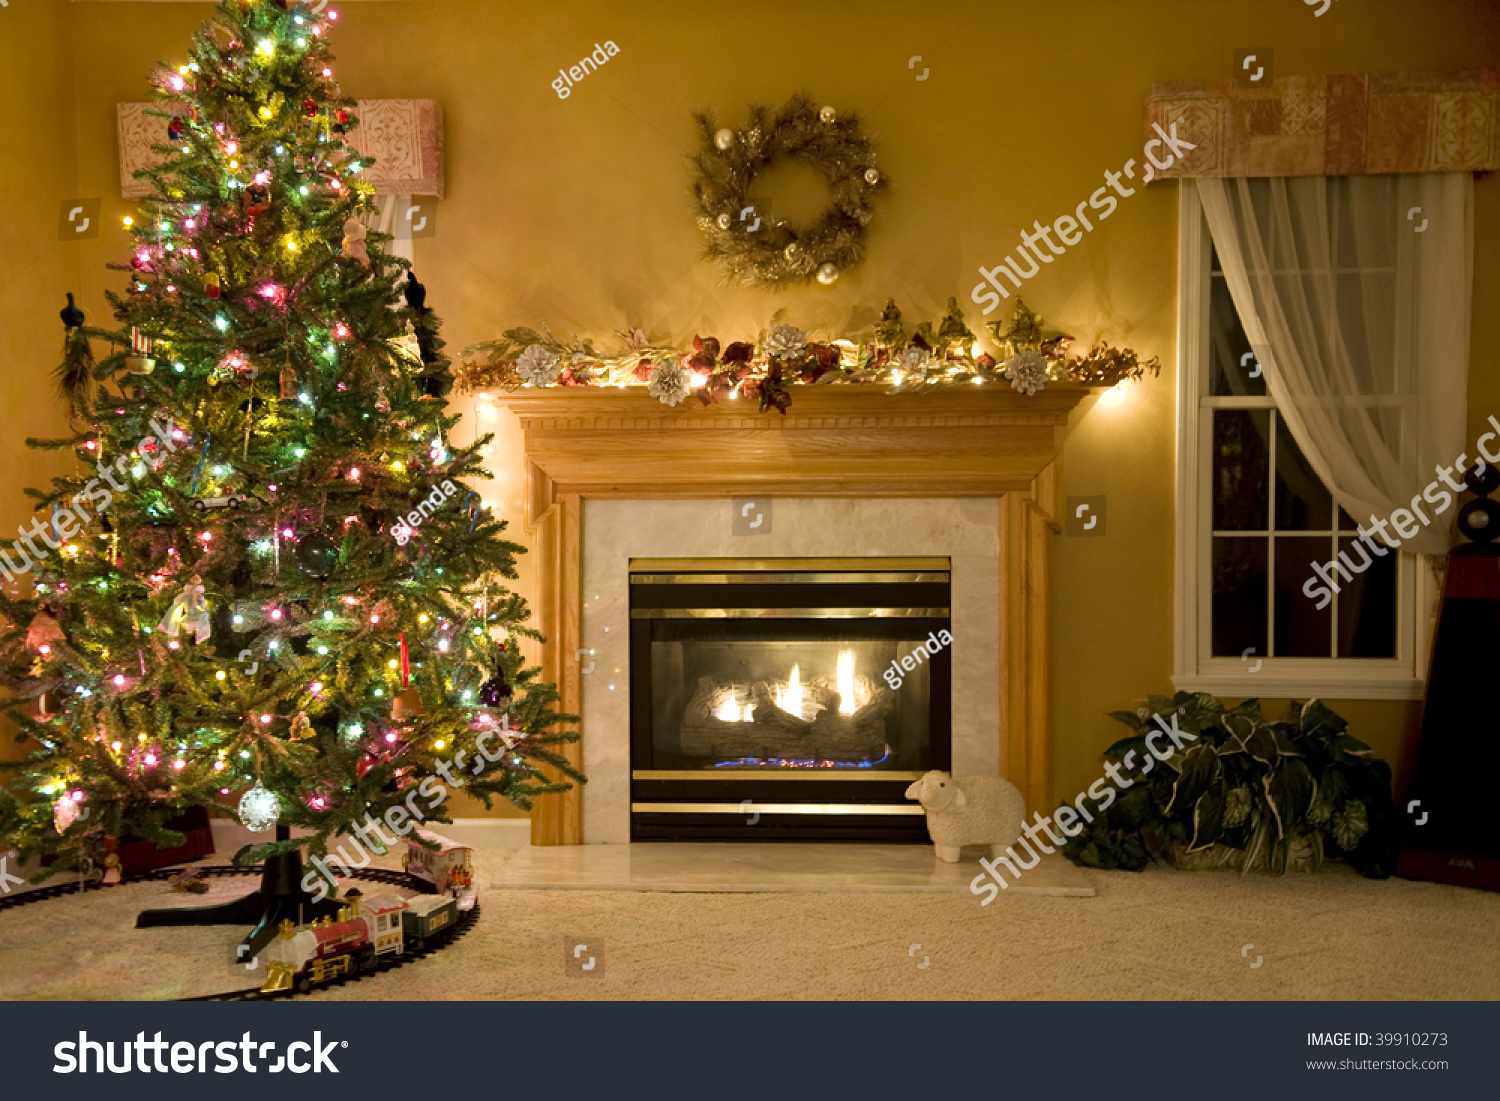 Of Living Rooms Decorated For Christmas Beautiful Living Room Decorated Christmas Stock Photo 39910273